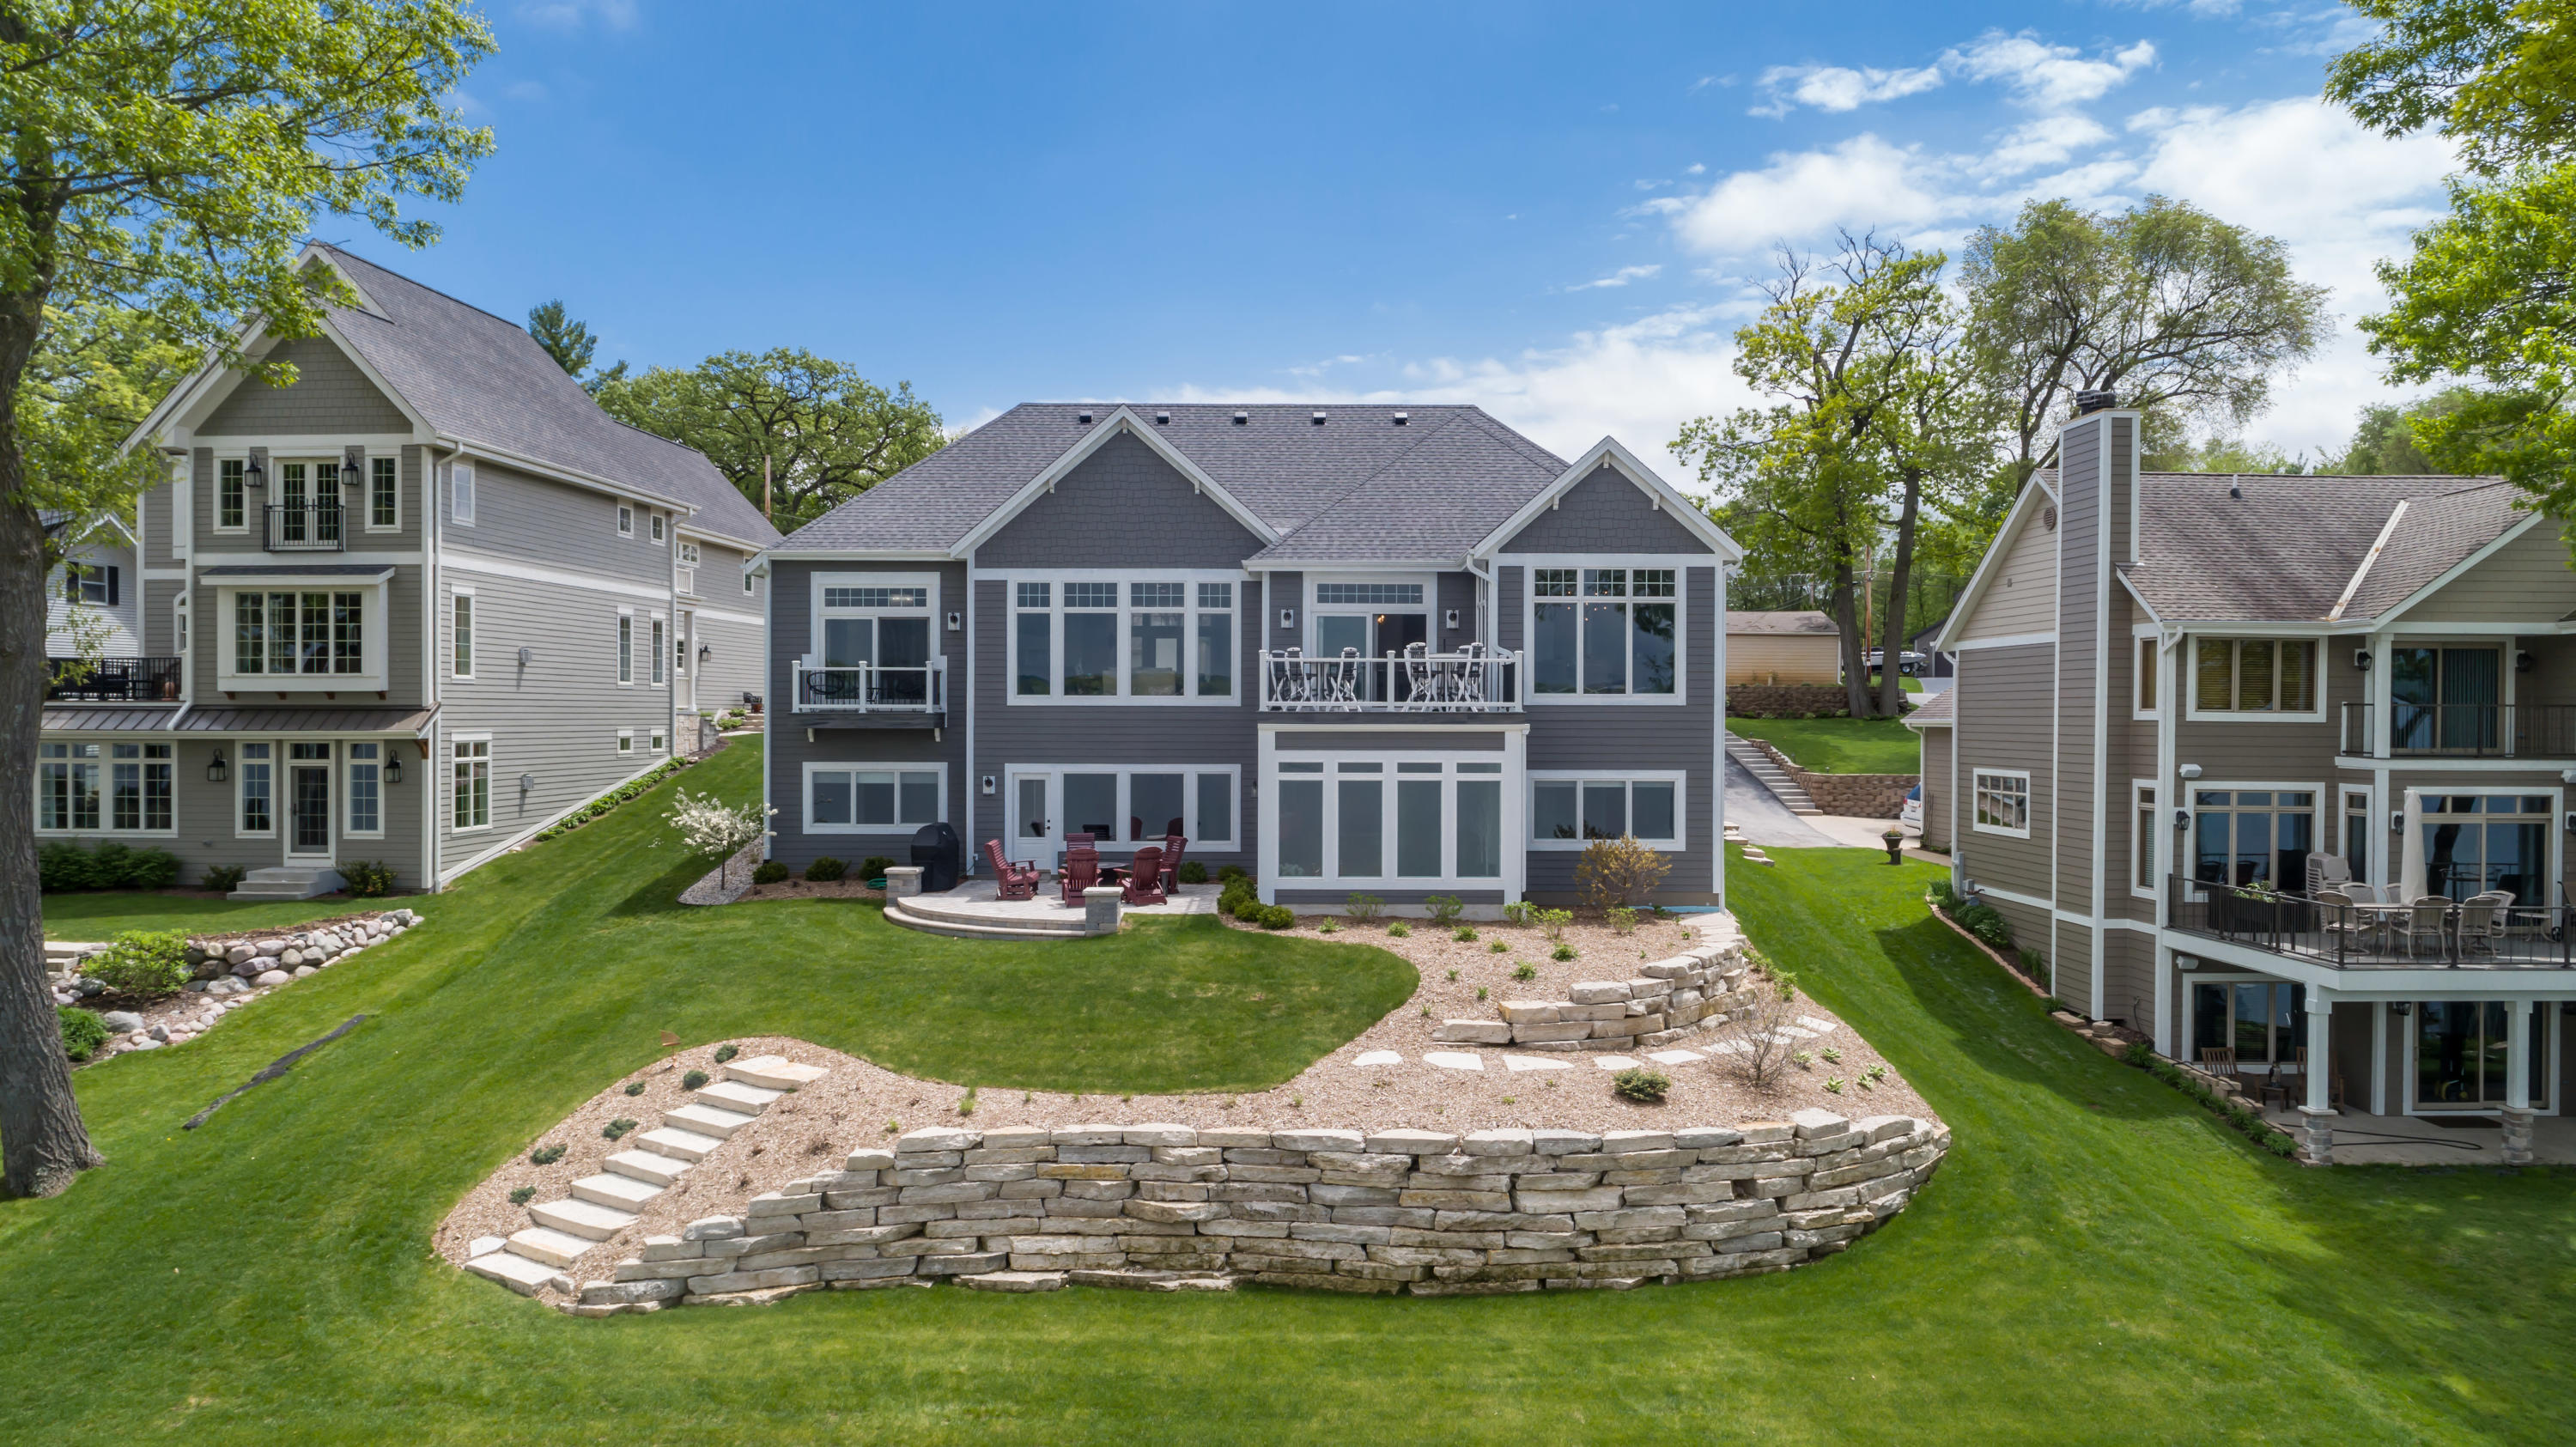 N30W26596 Peterson Dr, Pewaukee, Wisconsin 53072, 4 Bedrooms Bedrooms, ,4 BathroomsBathrooms,Single-Family,For Sale,Peterson Dr,1639758